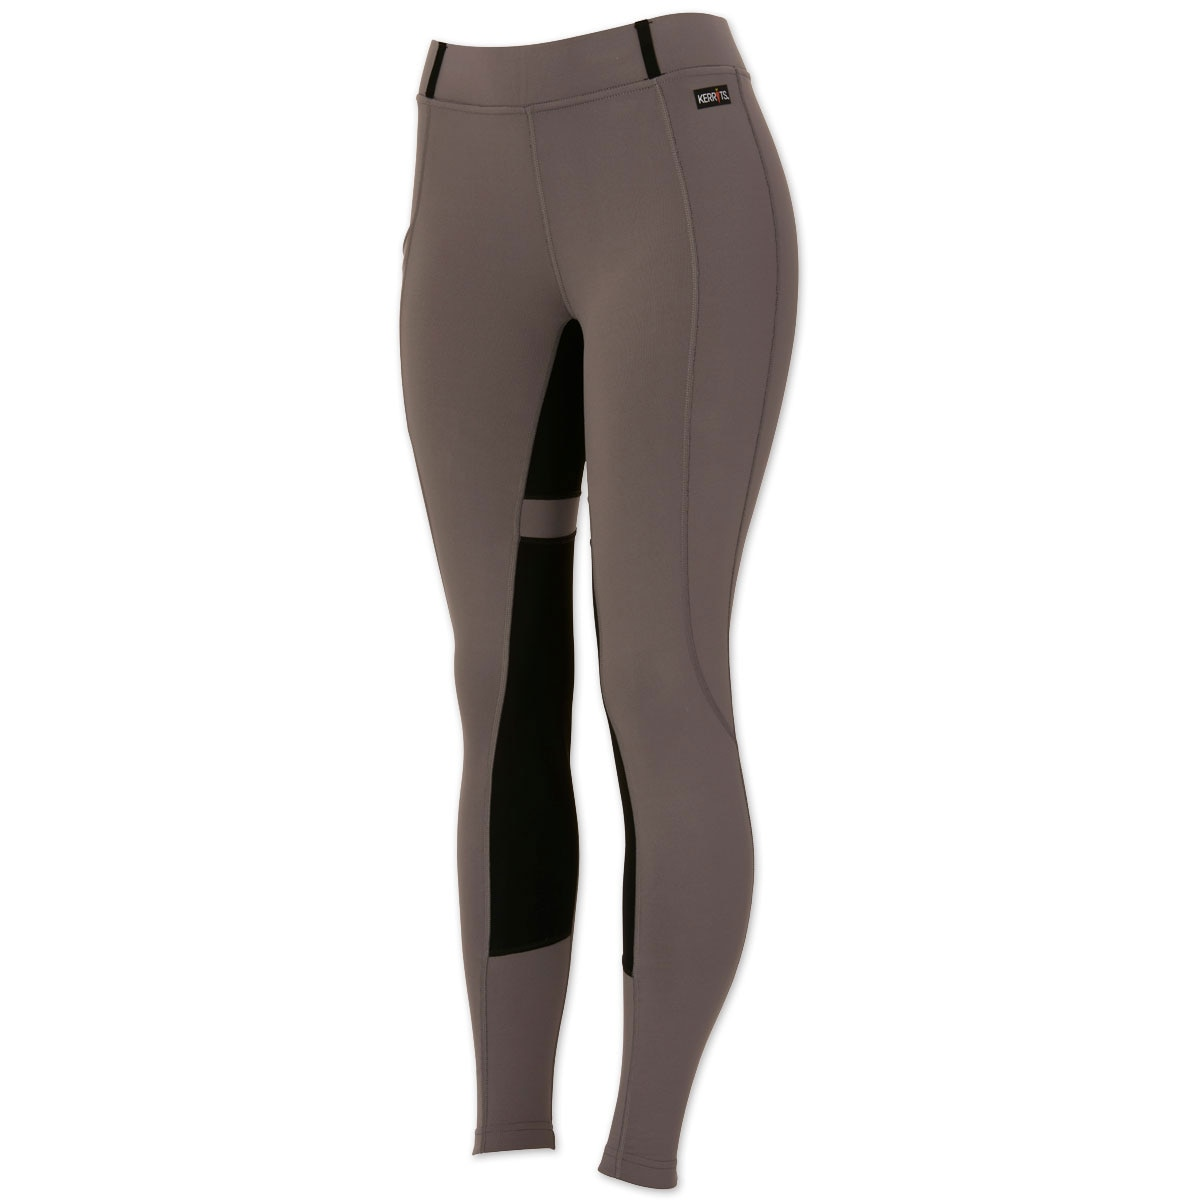 Kerrits Flex Tight II Full Seat Breeches